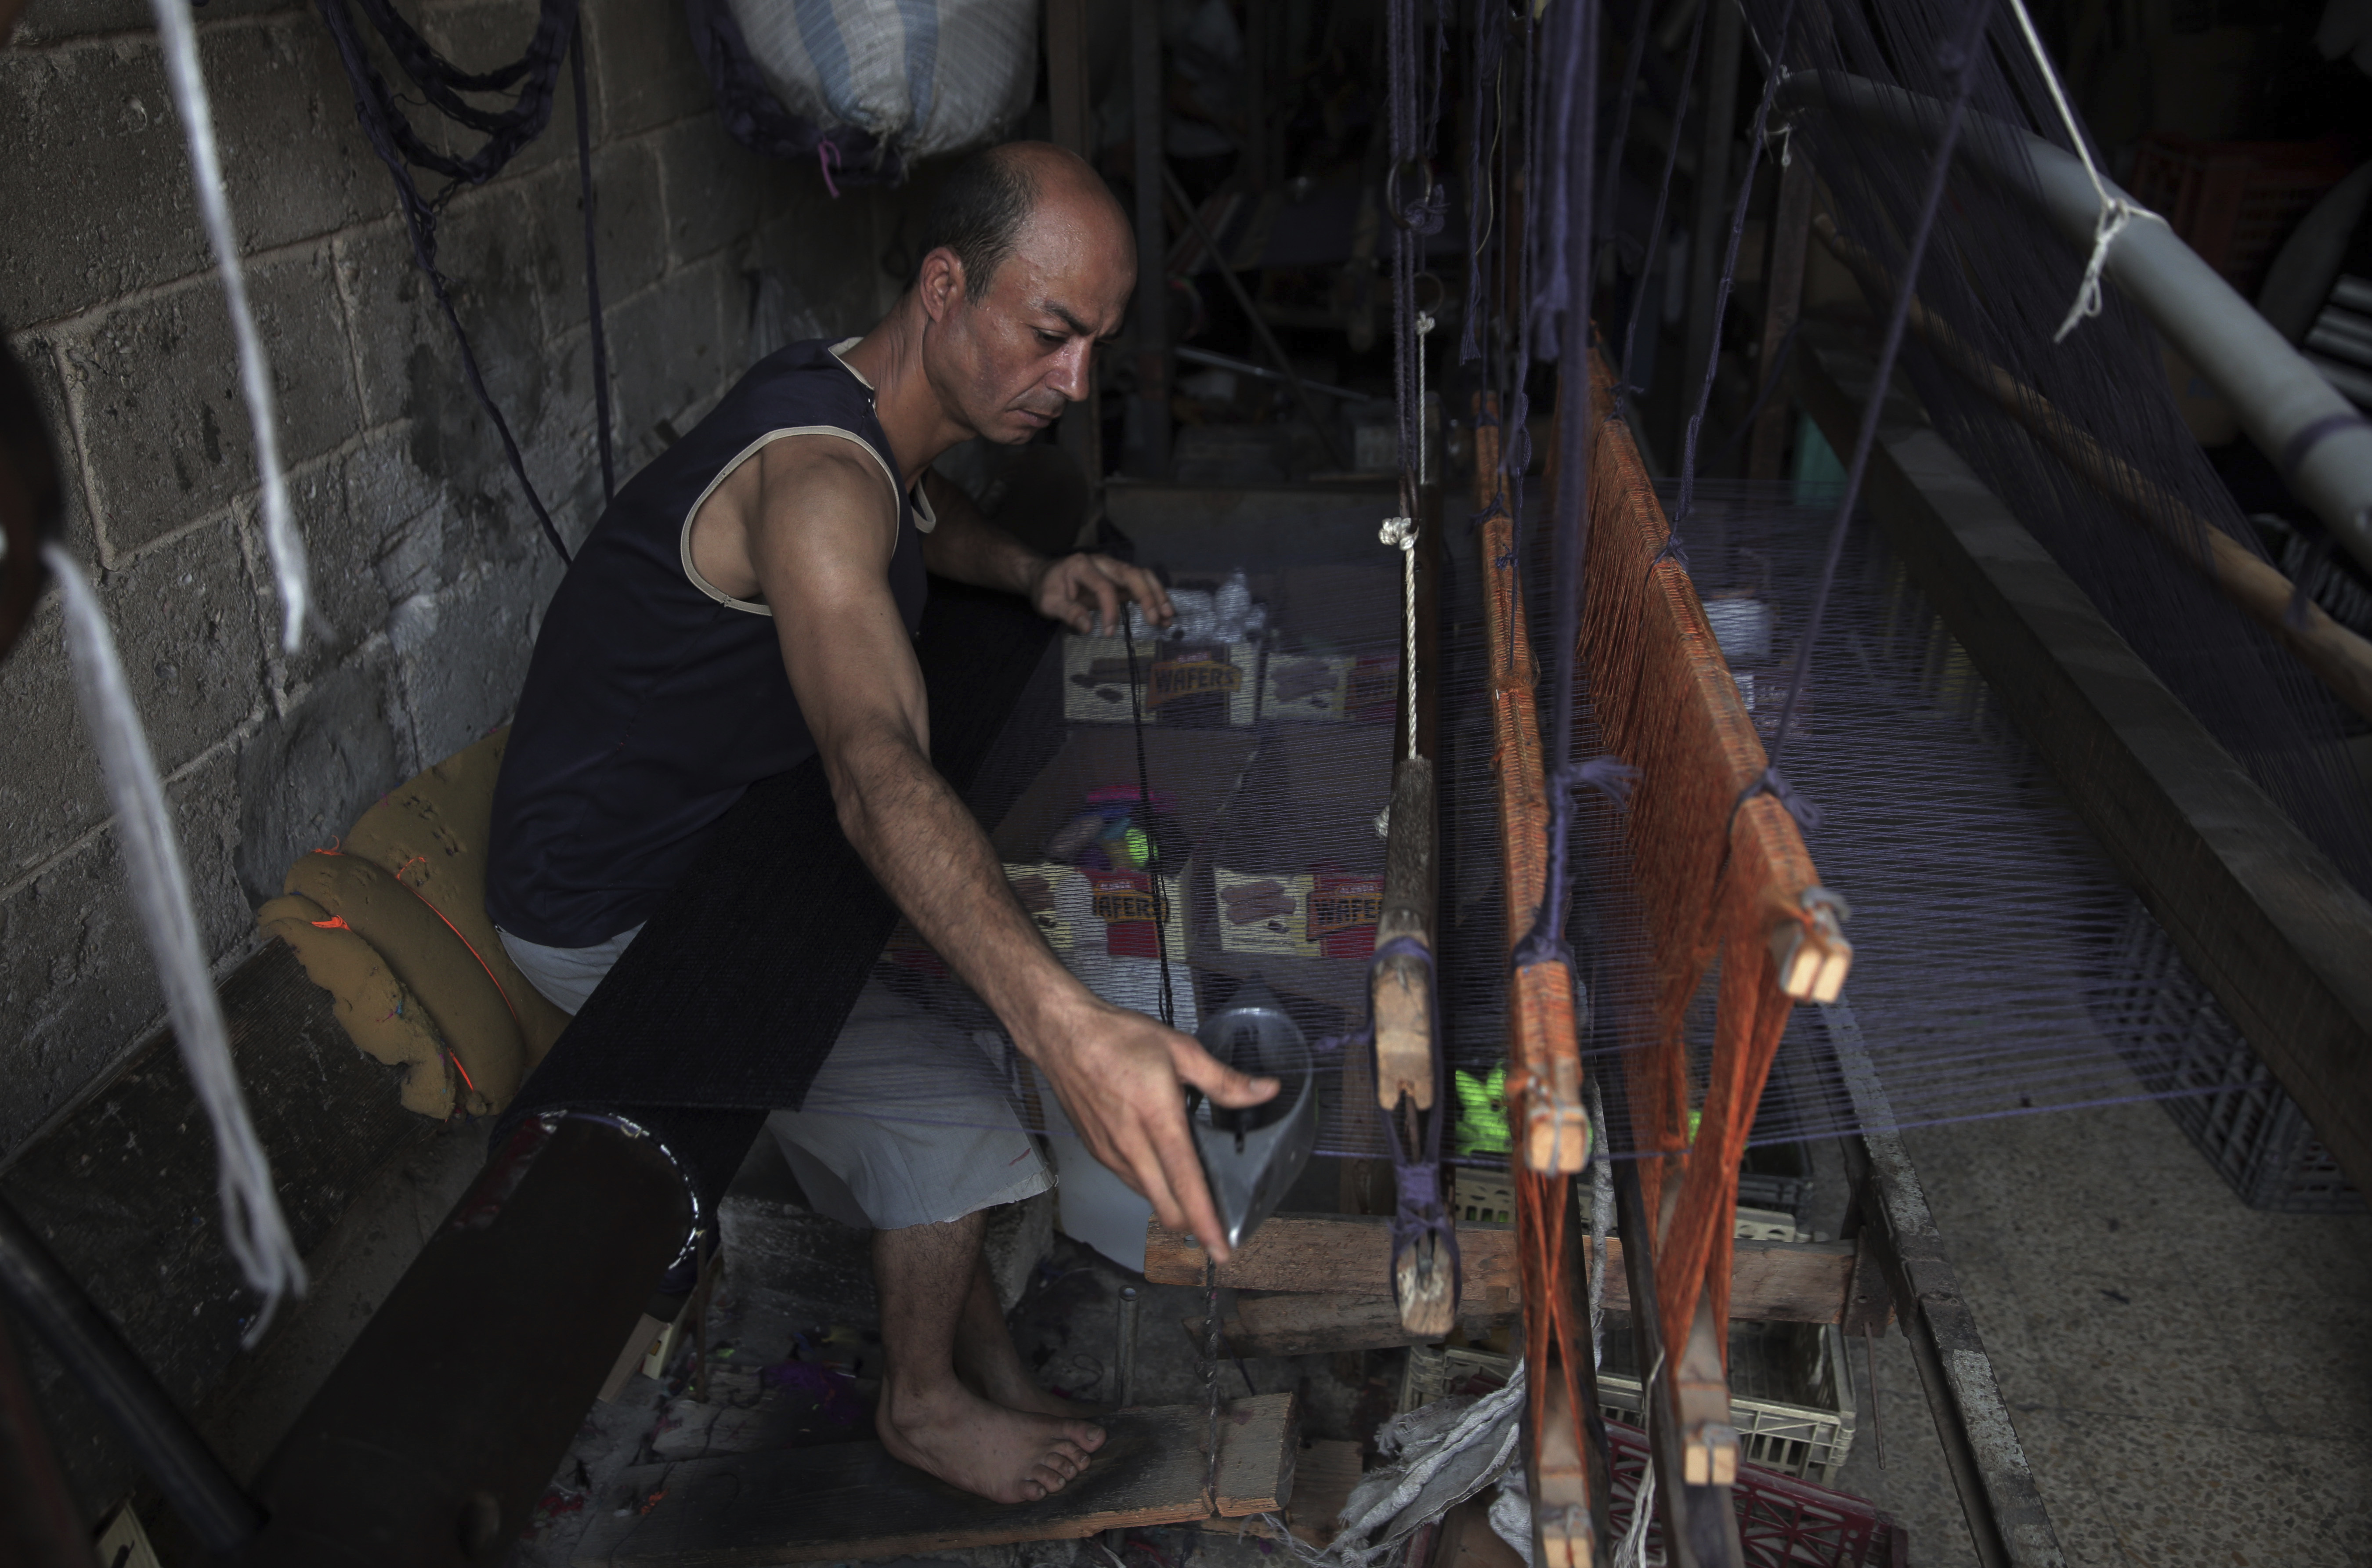 Gazas traditional crafts industries rapidly disappearing